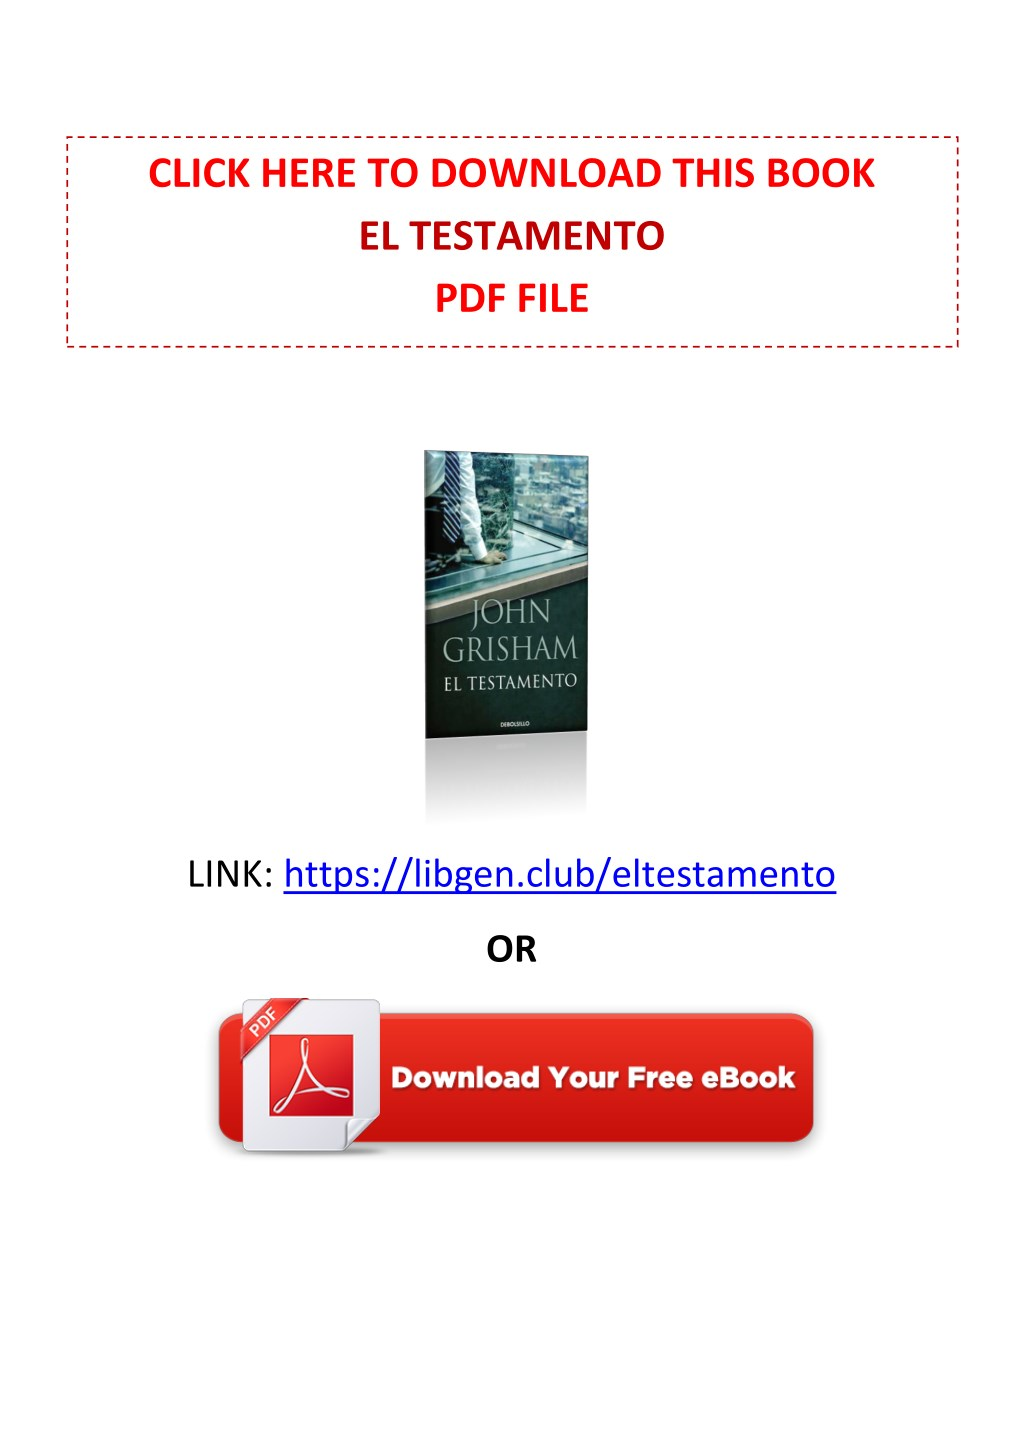 Ppt Pdf Free Download El Testamento By John Grisham Powerpoint Presentation Id 7972483